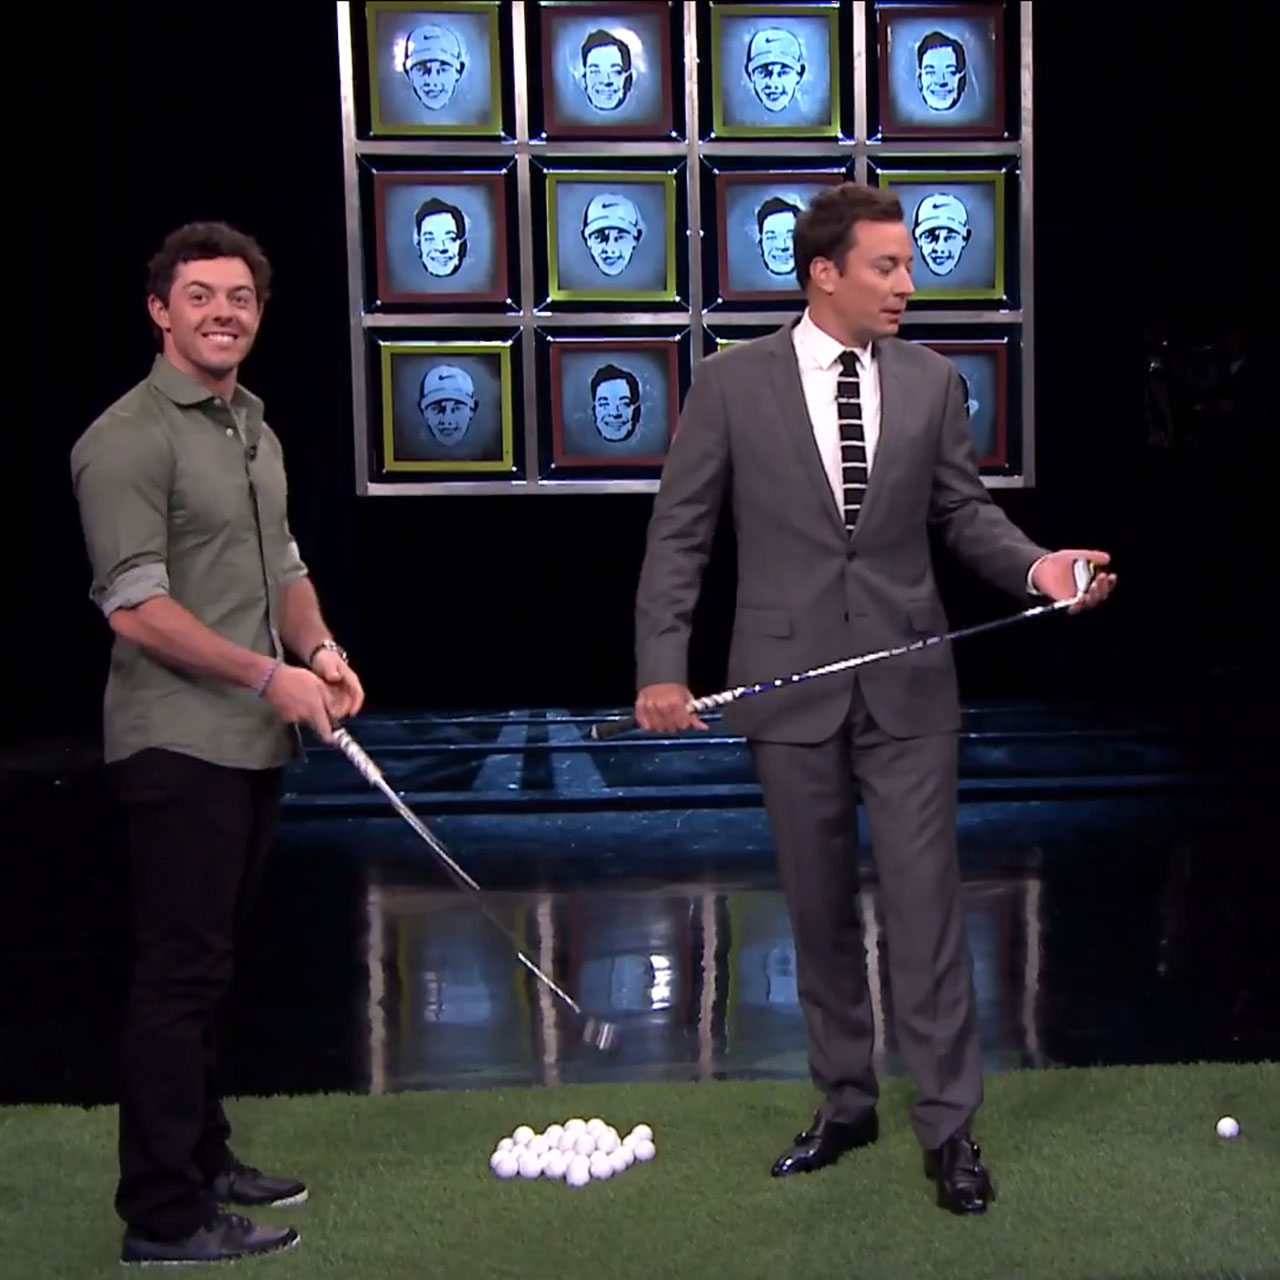 Rory McIlroy plays Jimmy Fallon in facebreakers